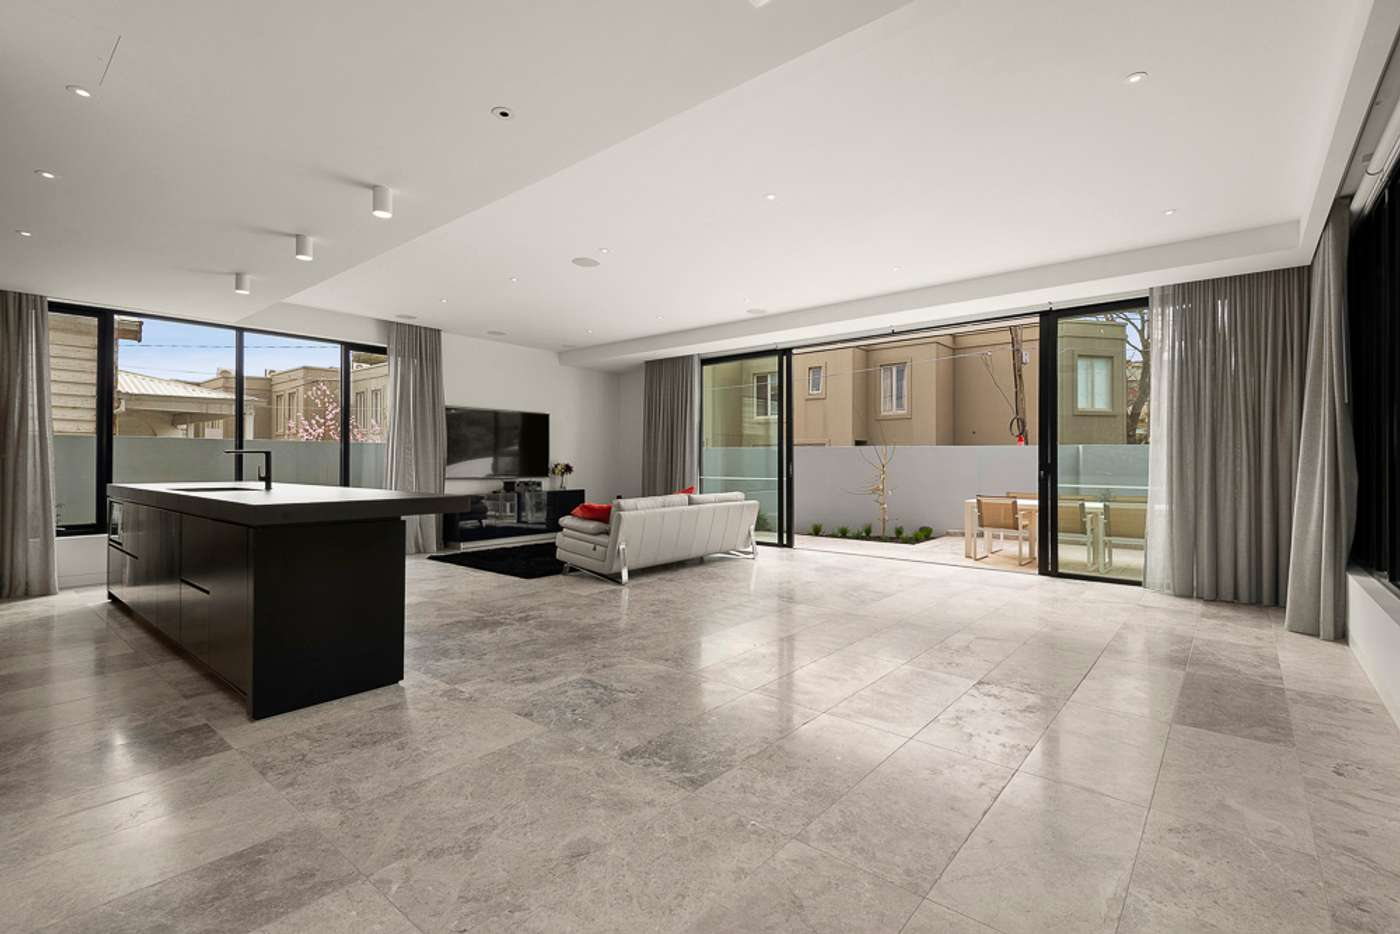 Seventh view of Homely apartment listing, 1/83 Surrey Rd North, South Yarra VIC 3141